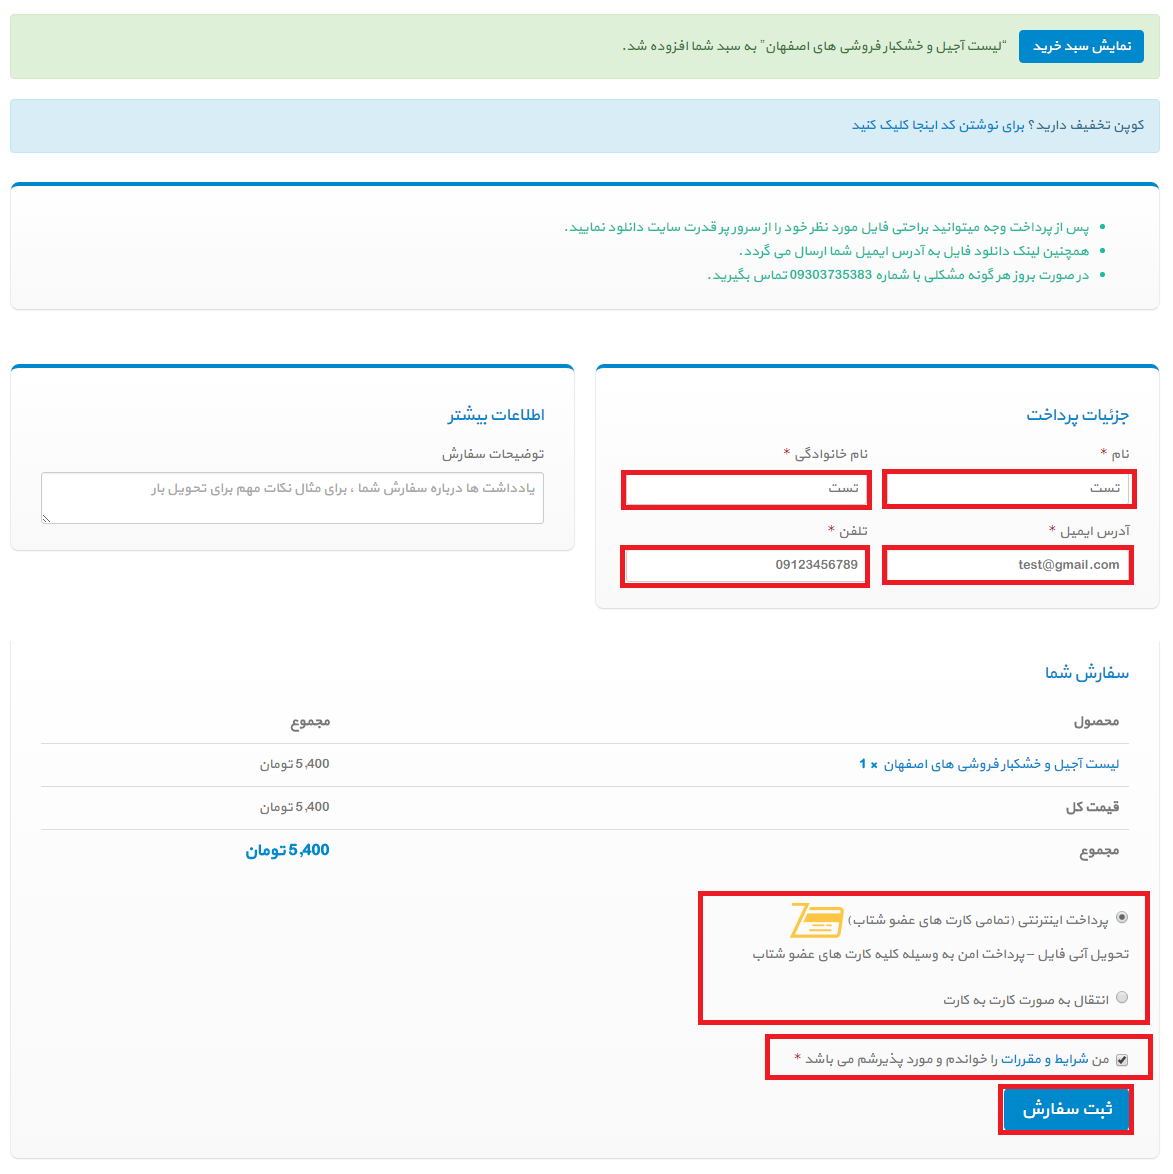 screenshot filebank.org 2016 08 31 11 04 49 - راهنمای خرید